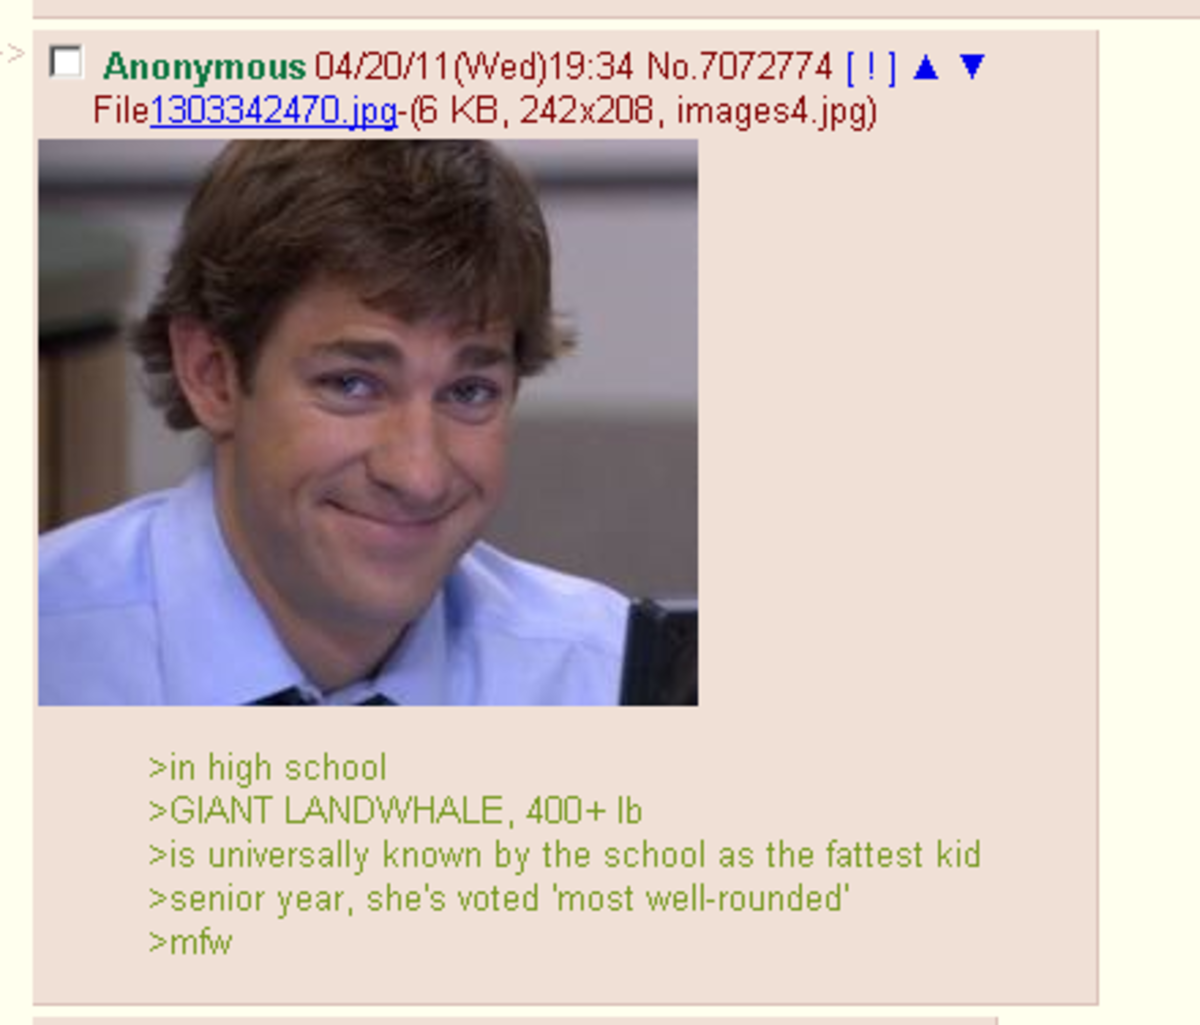 agonizing flippant Mongoose. join list: DailyGreentext (264 subs)Mention Clicks: 6856Msgs Sent: 20781Mention History.. I remember this girl back in highschool who had all her fat down in her thighs and stomach, there was no fat anywhere else. her lower body looked like a disk, a